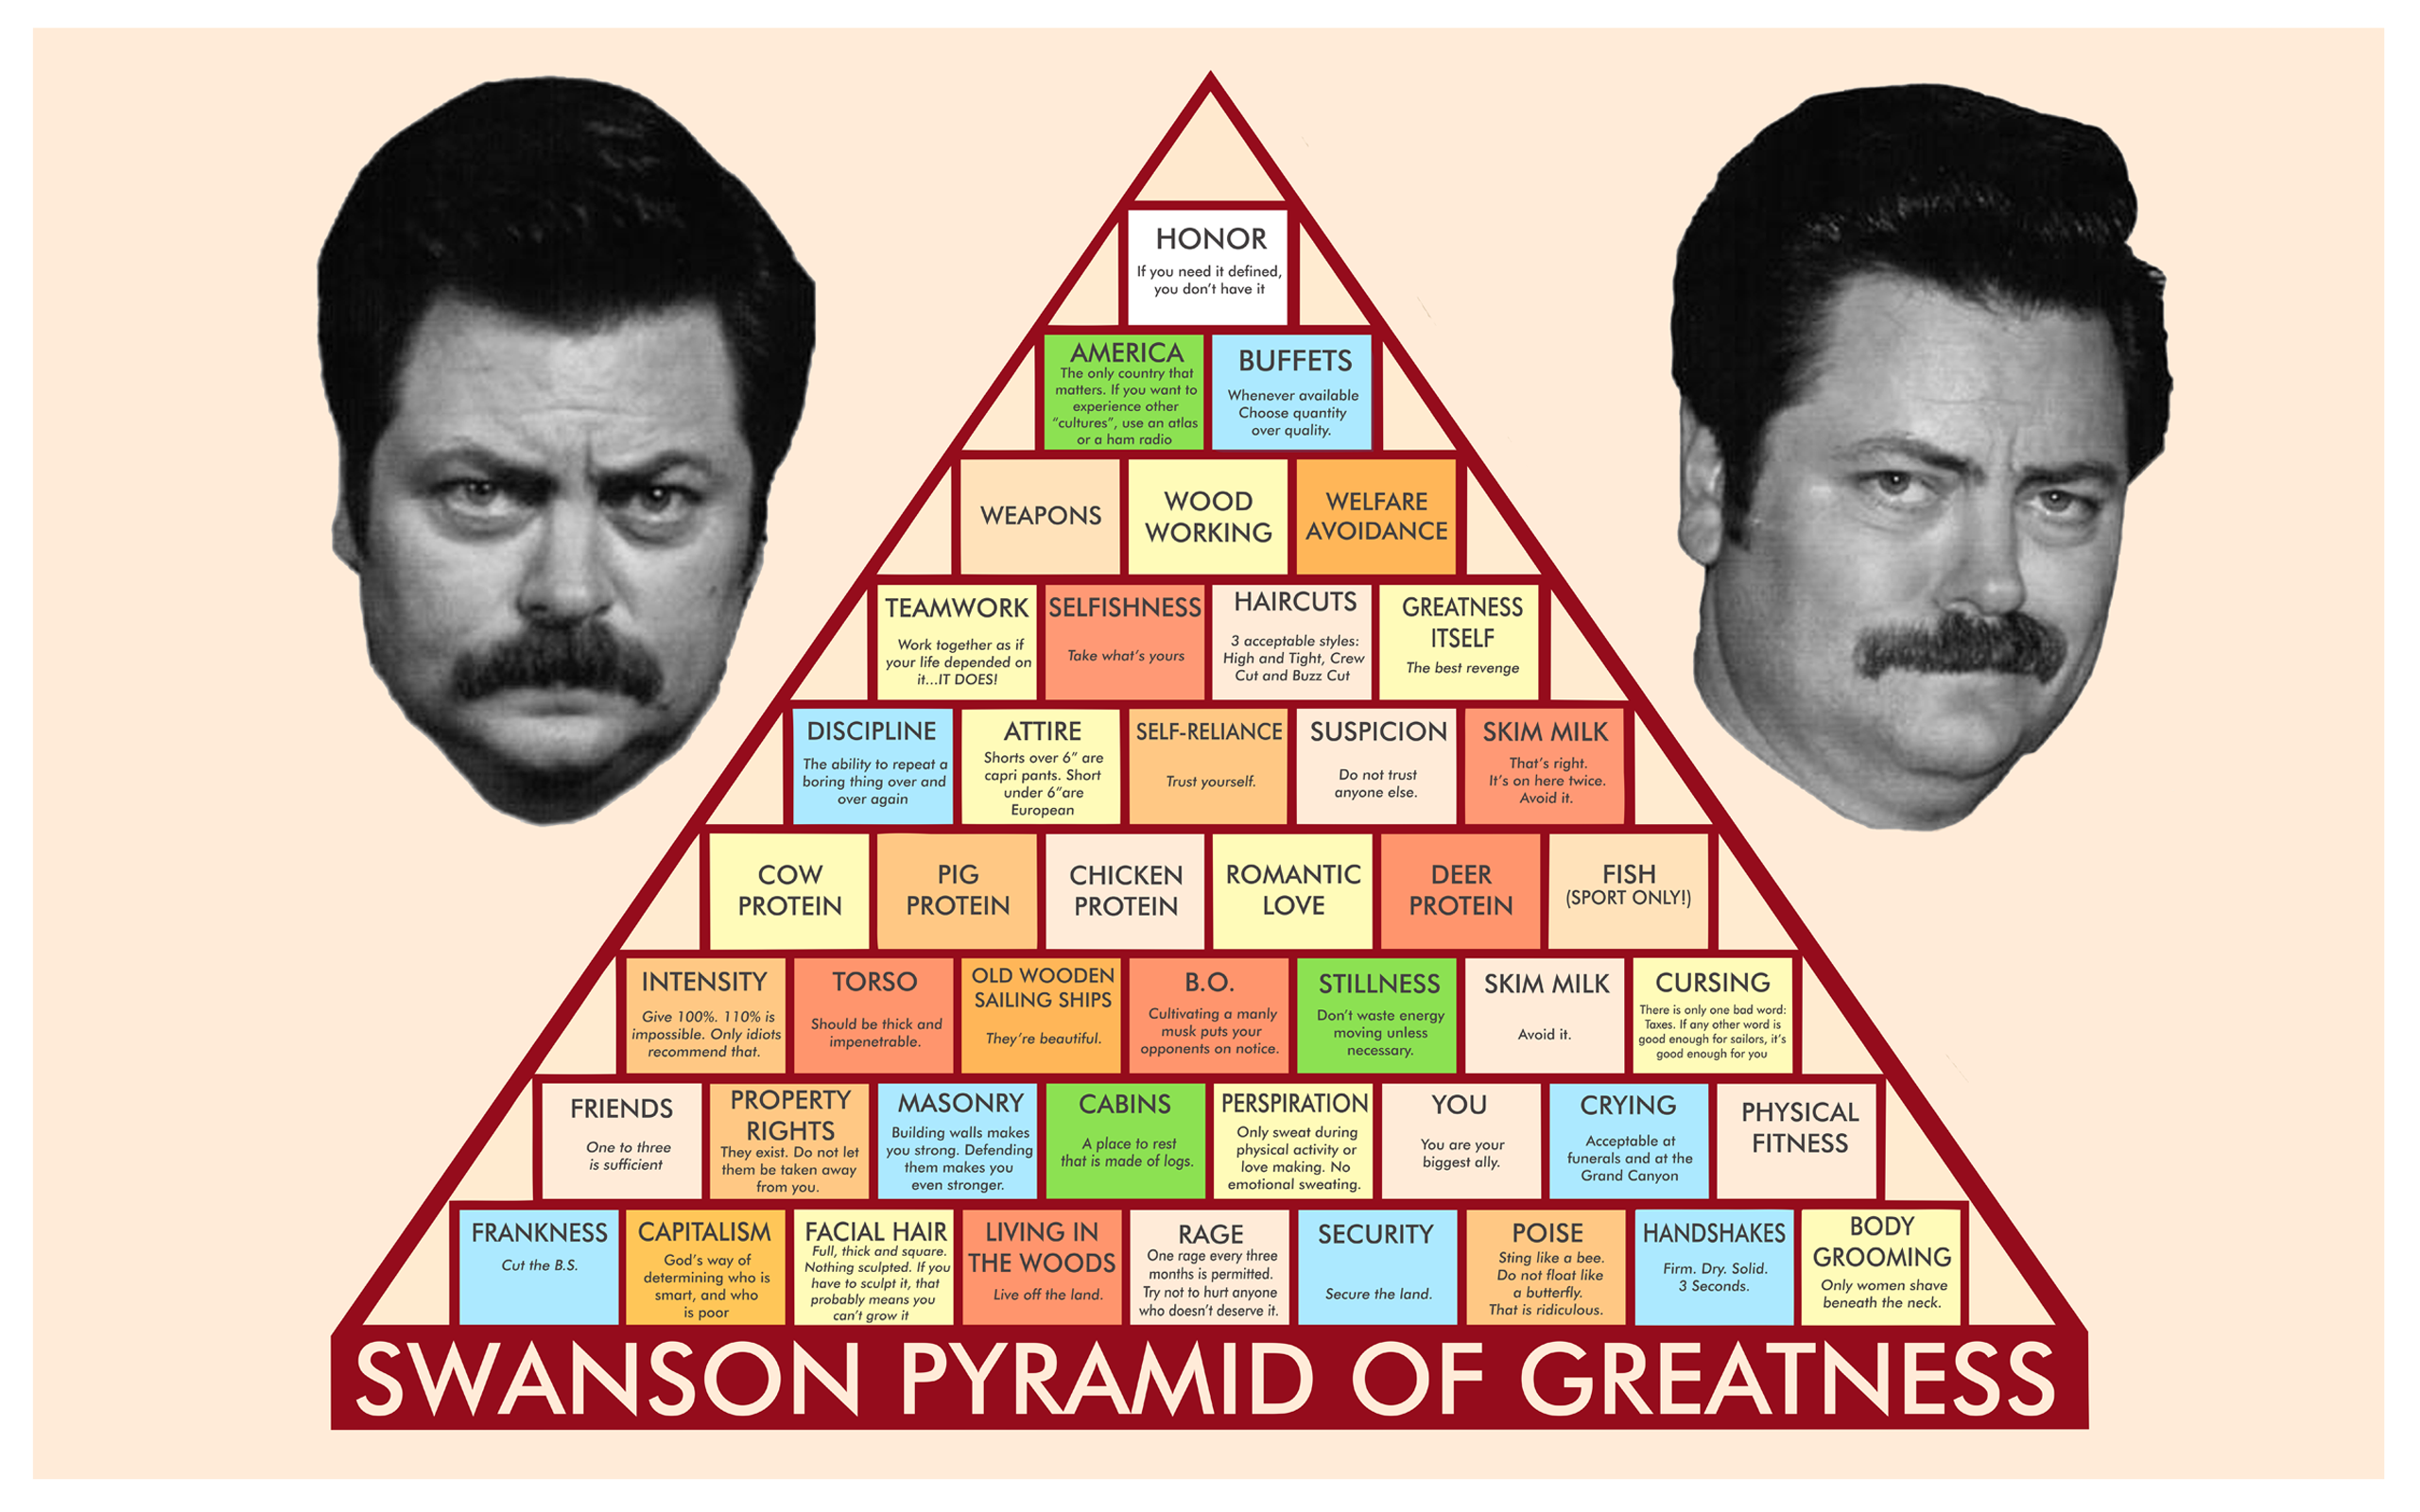 swanson-pyramid-of-greatness-nexus10-256